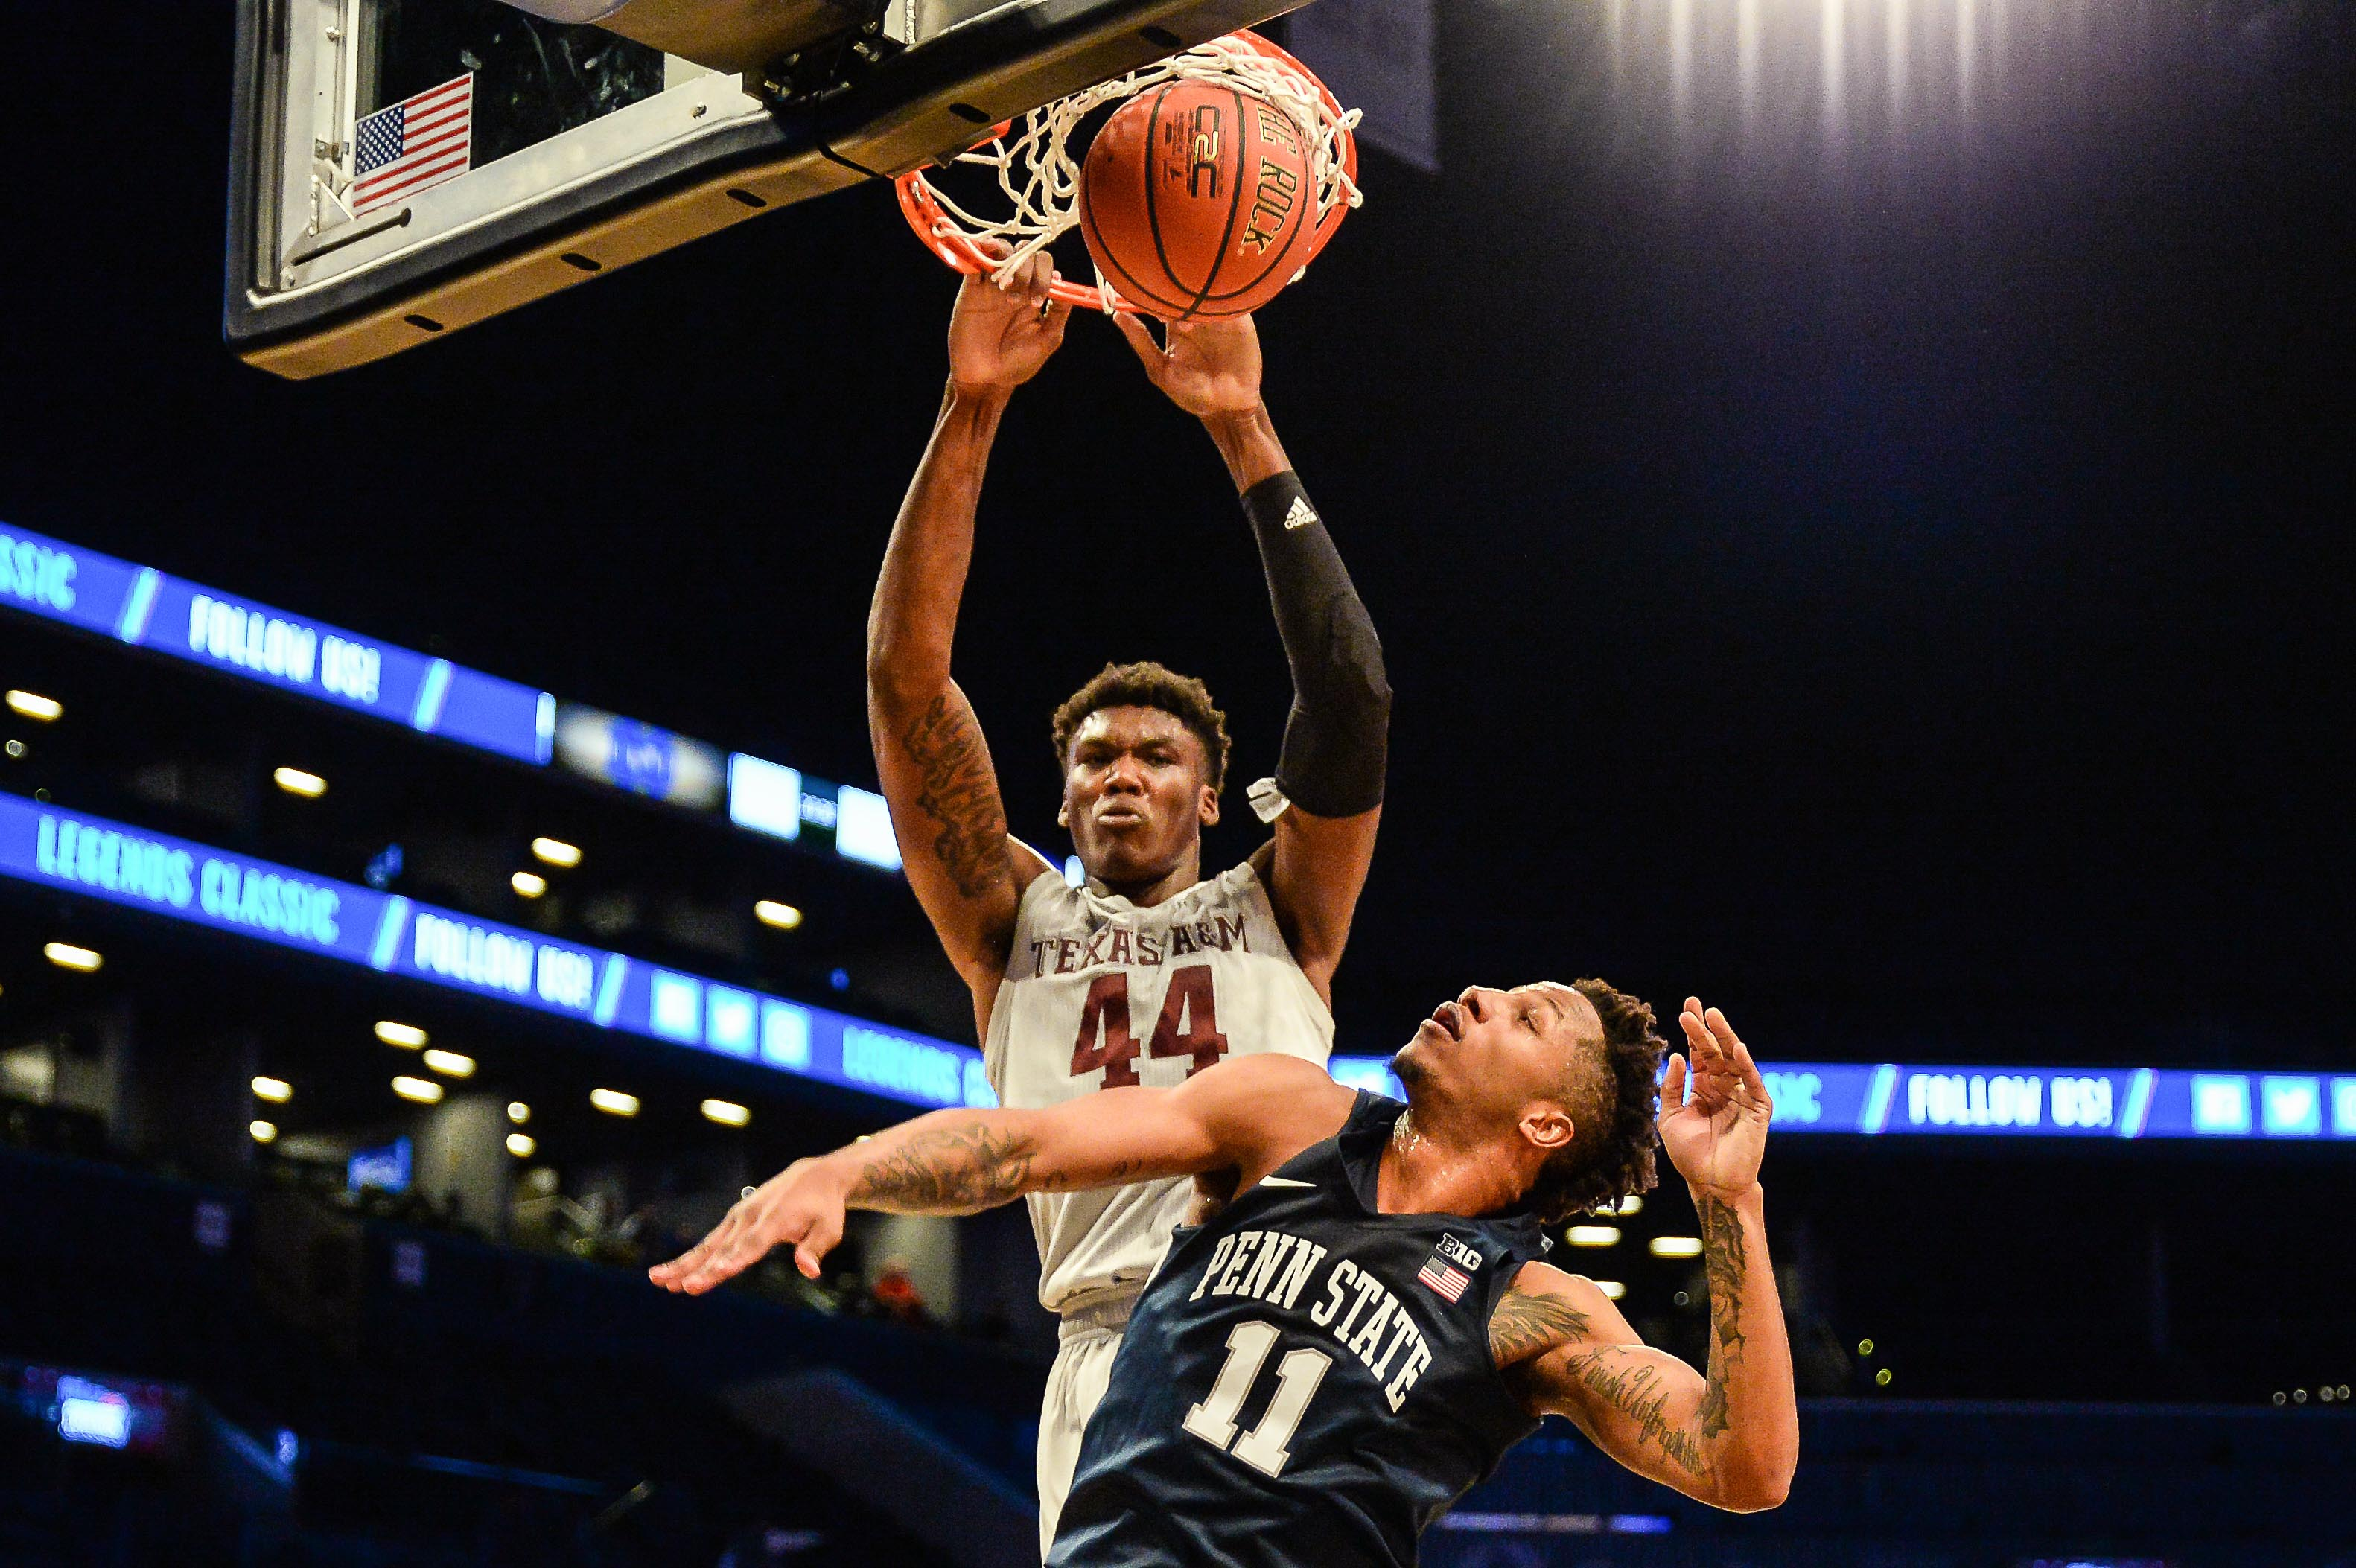 NCAA Basketball: Legends Classic-Penn State at Texas A&M